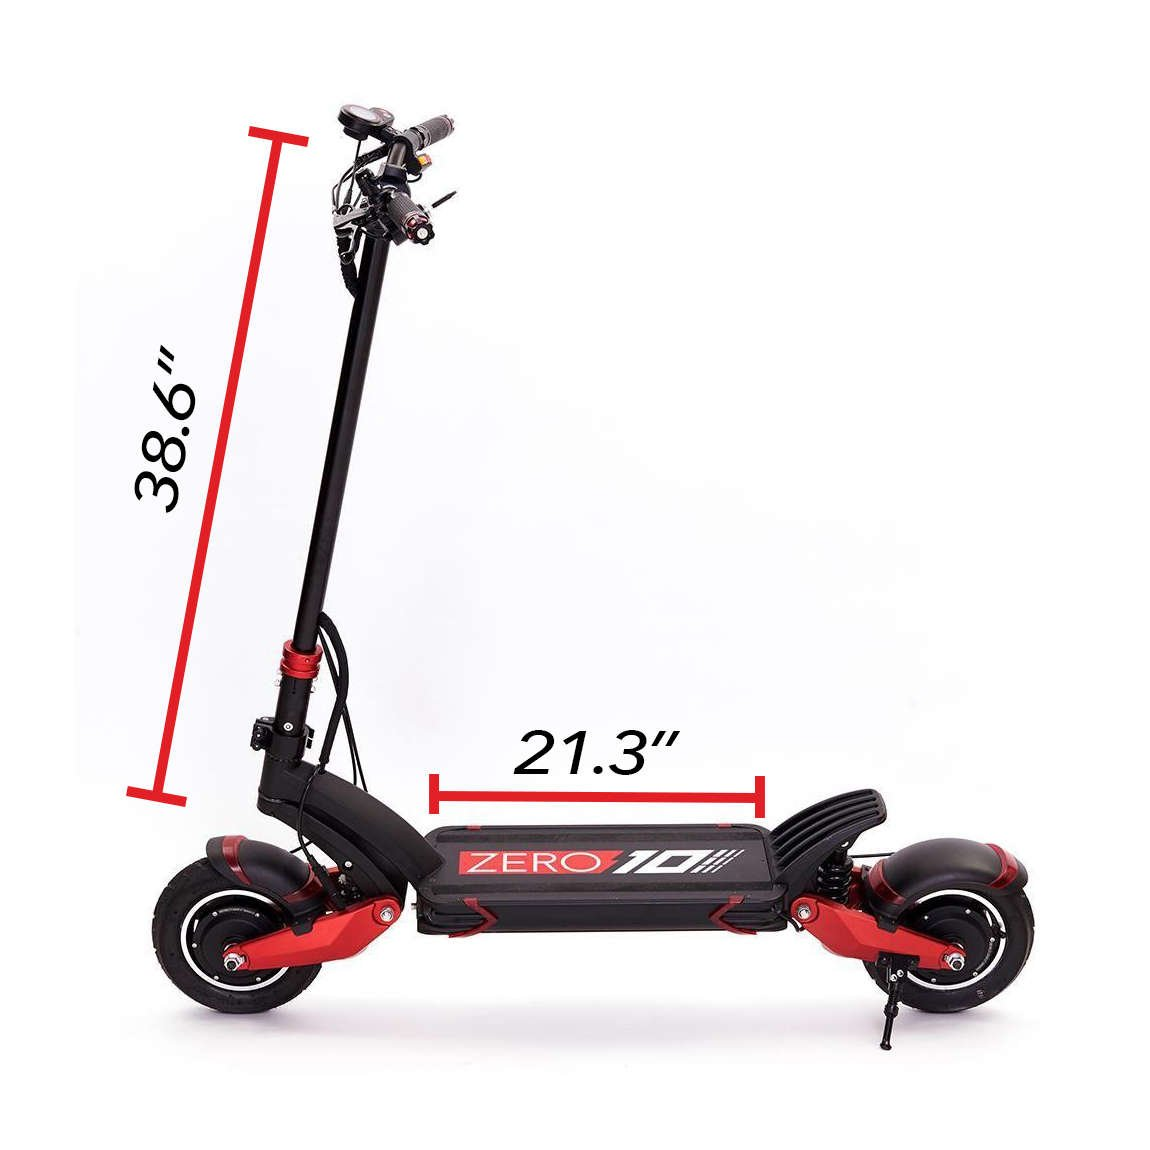 zero 10x electric scooter handlebar height 38.6 in